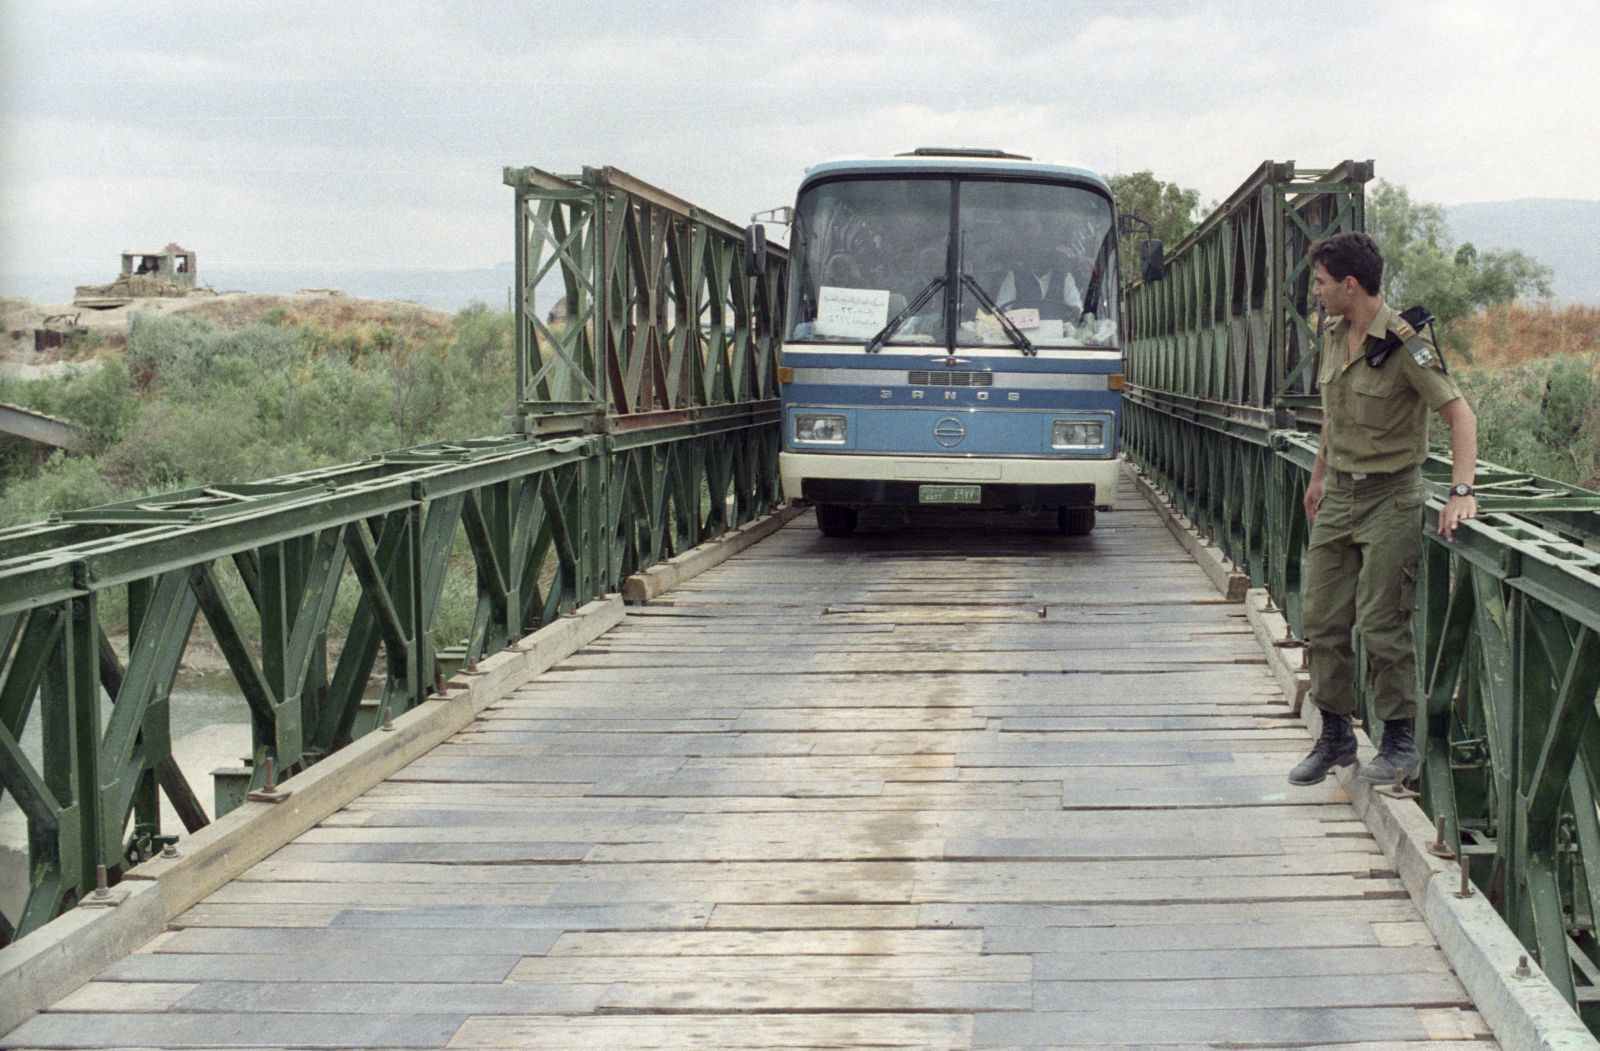 A bus crosses the Allenby Bridge in this file photo from 1992. Photo by FLASH90